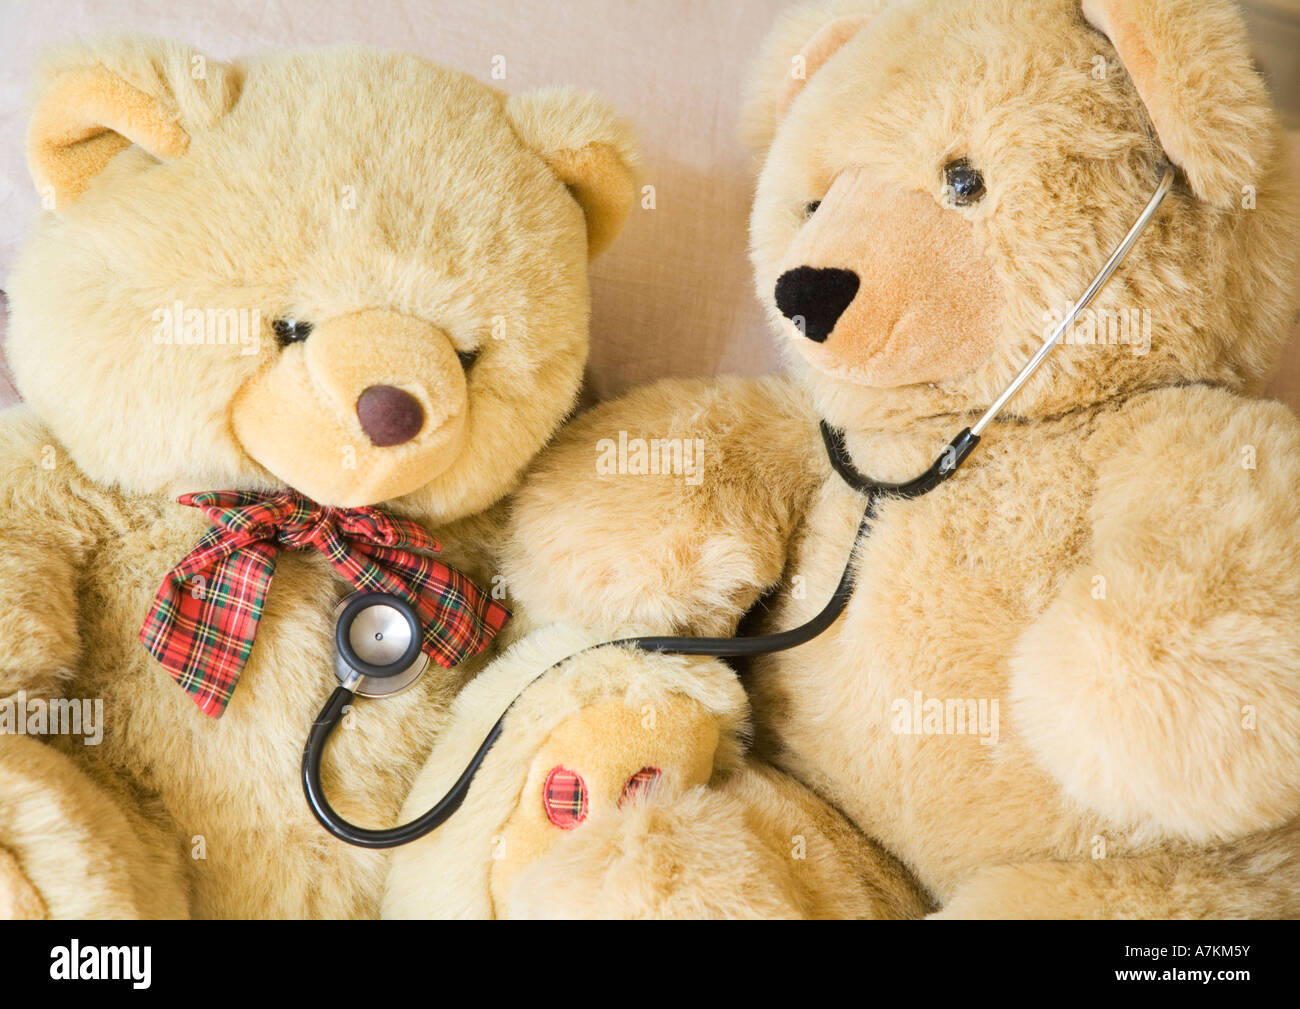 Teddy bears with stethoscope posing as doctor and patient. Ideal to illustrate paediatrics. - Stock Image